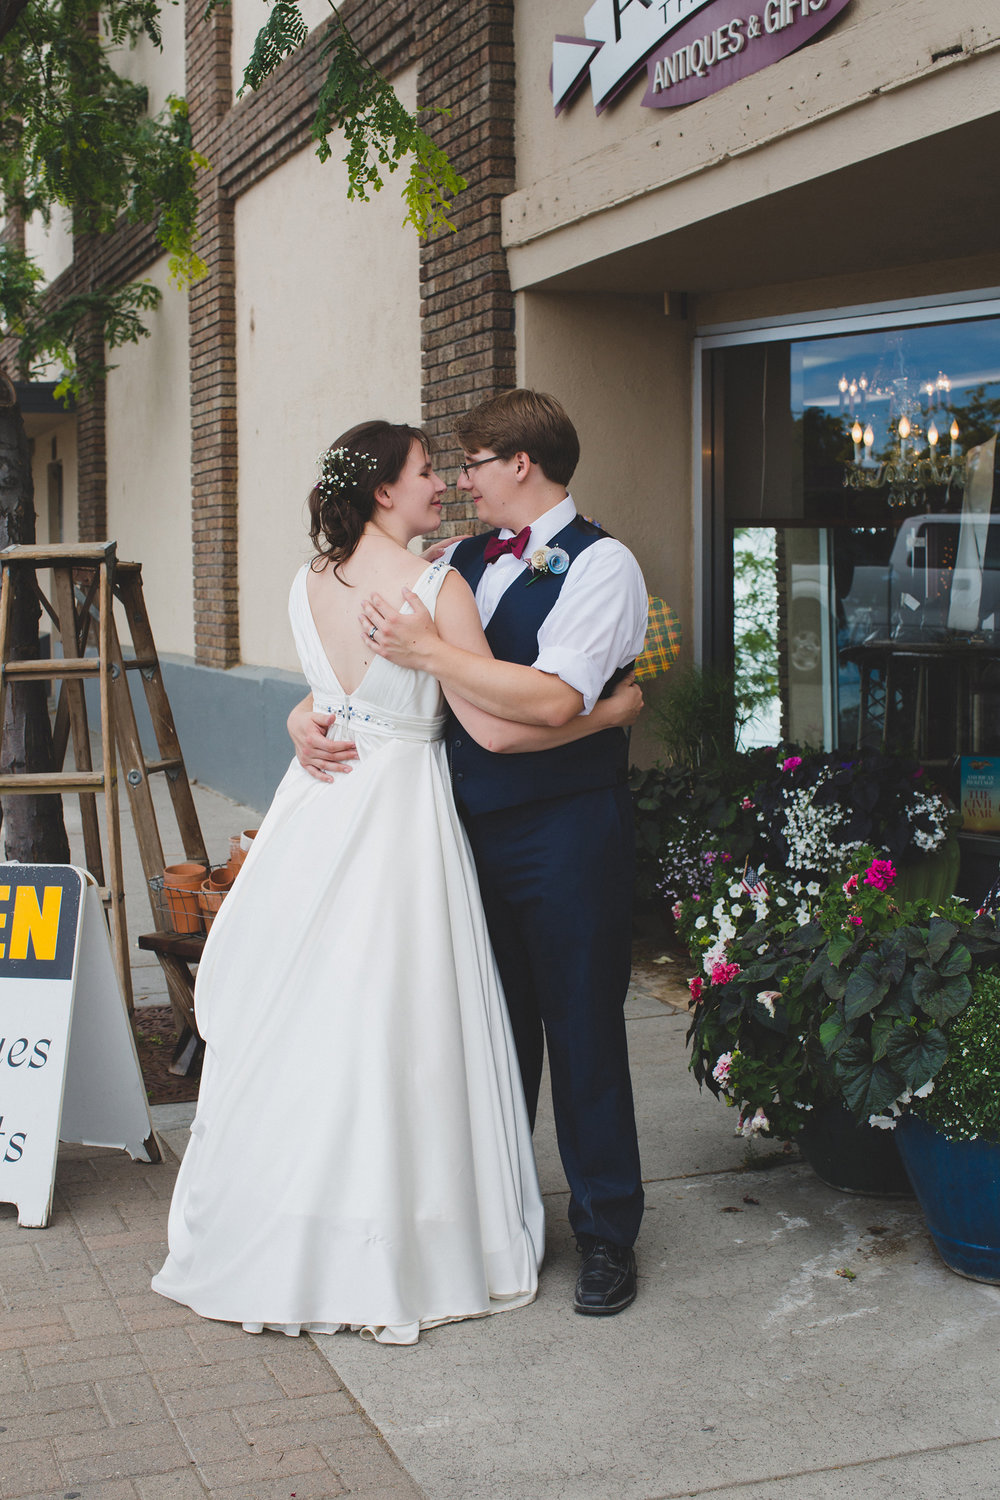 Tri Cities Wedding Photographer_Karis and Adrienne_Church wedding_ Downtown Kennewick 5